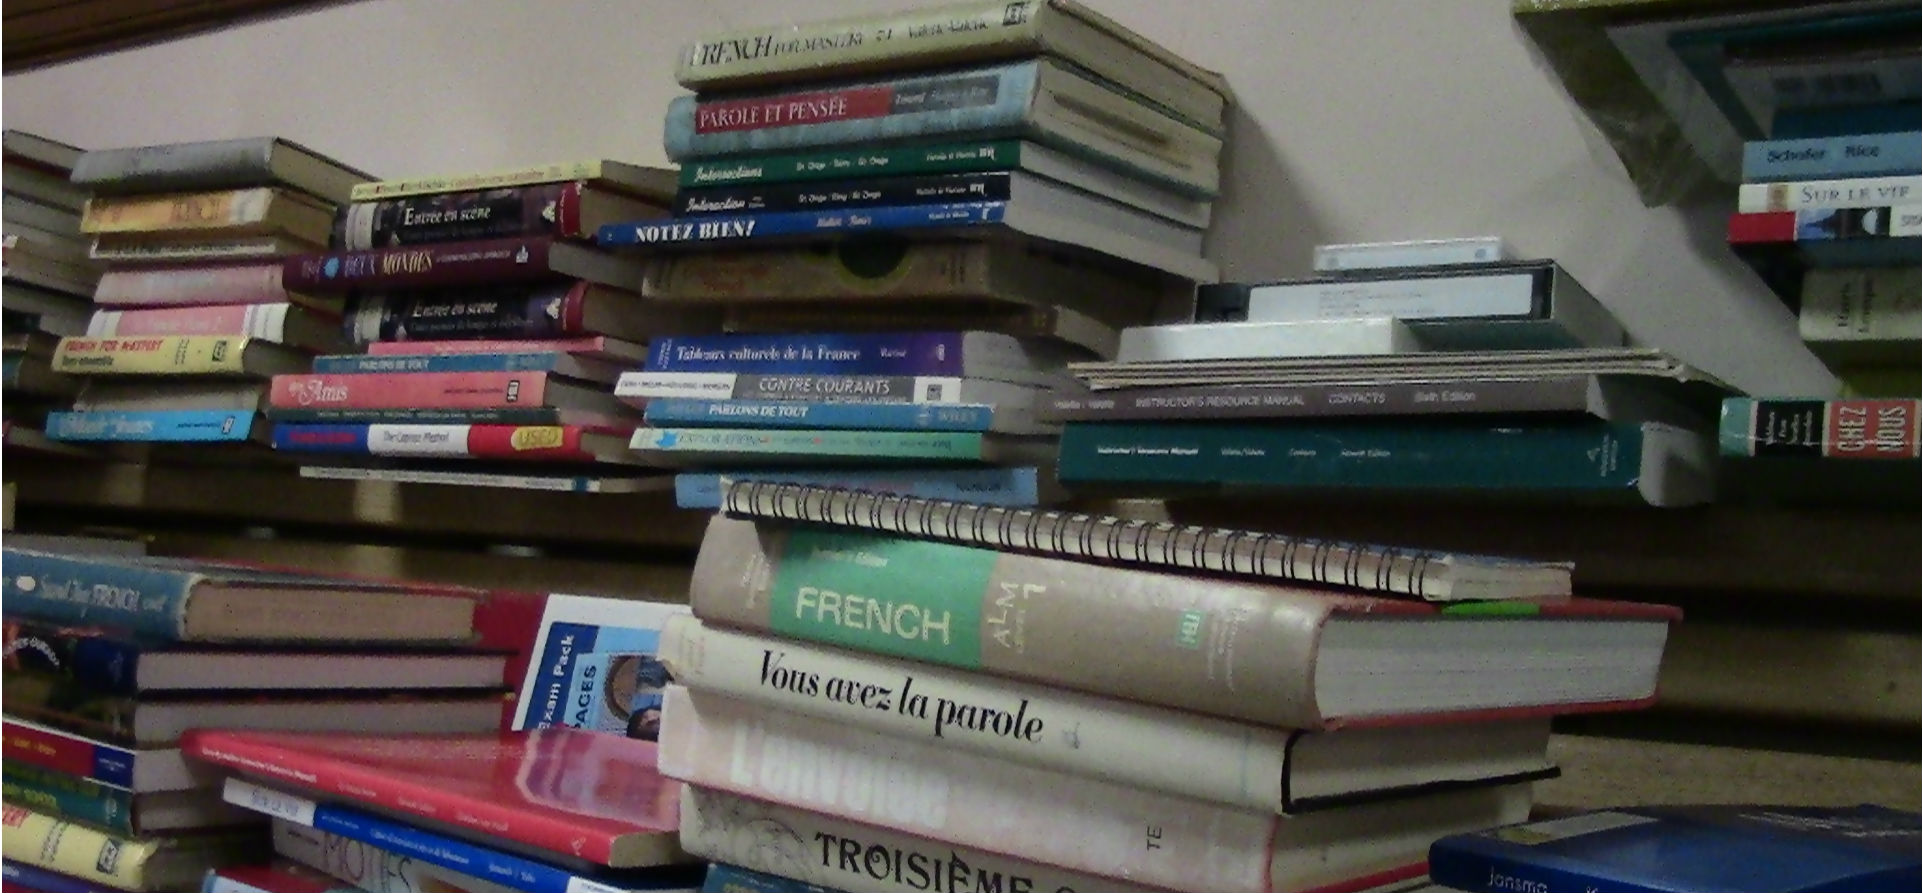 Photo of a number of stacks of international language books.